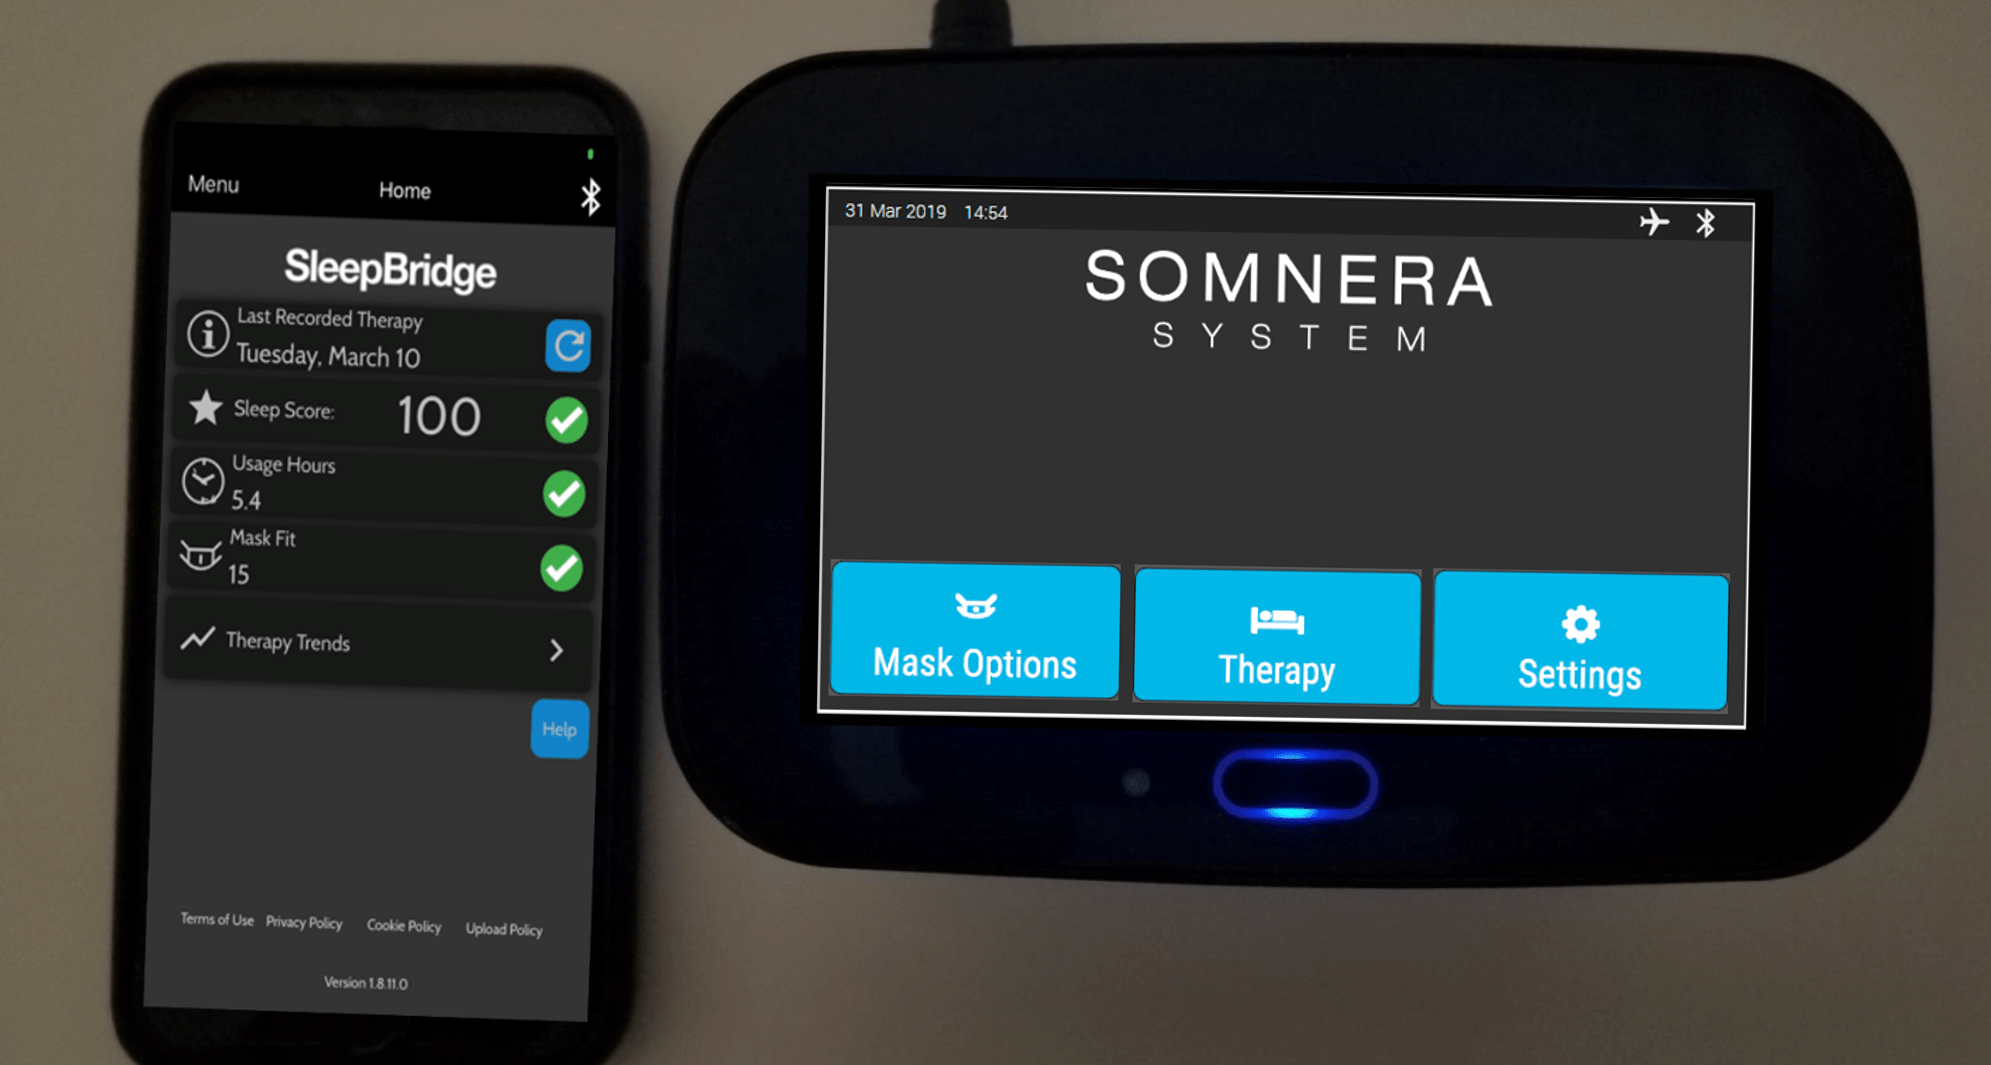 Somnera - New Treatment Technology for Sleep Apnea Announced by San Clemente, Calif.-Based Somnera